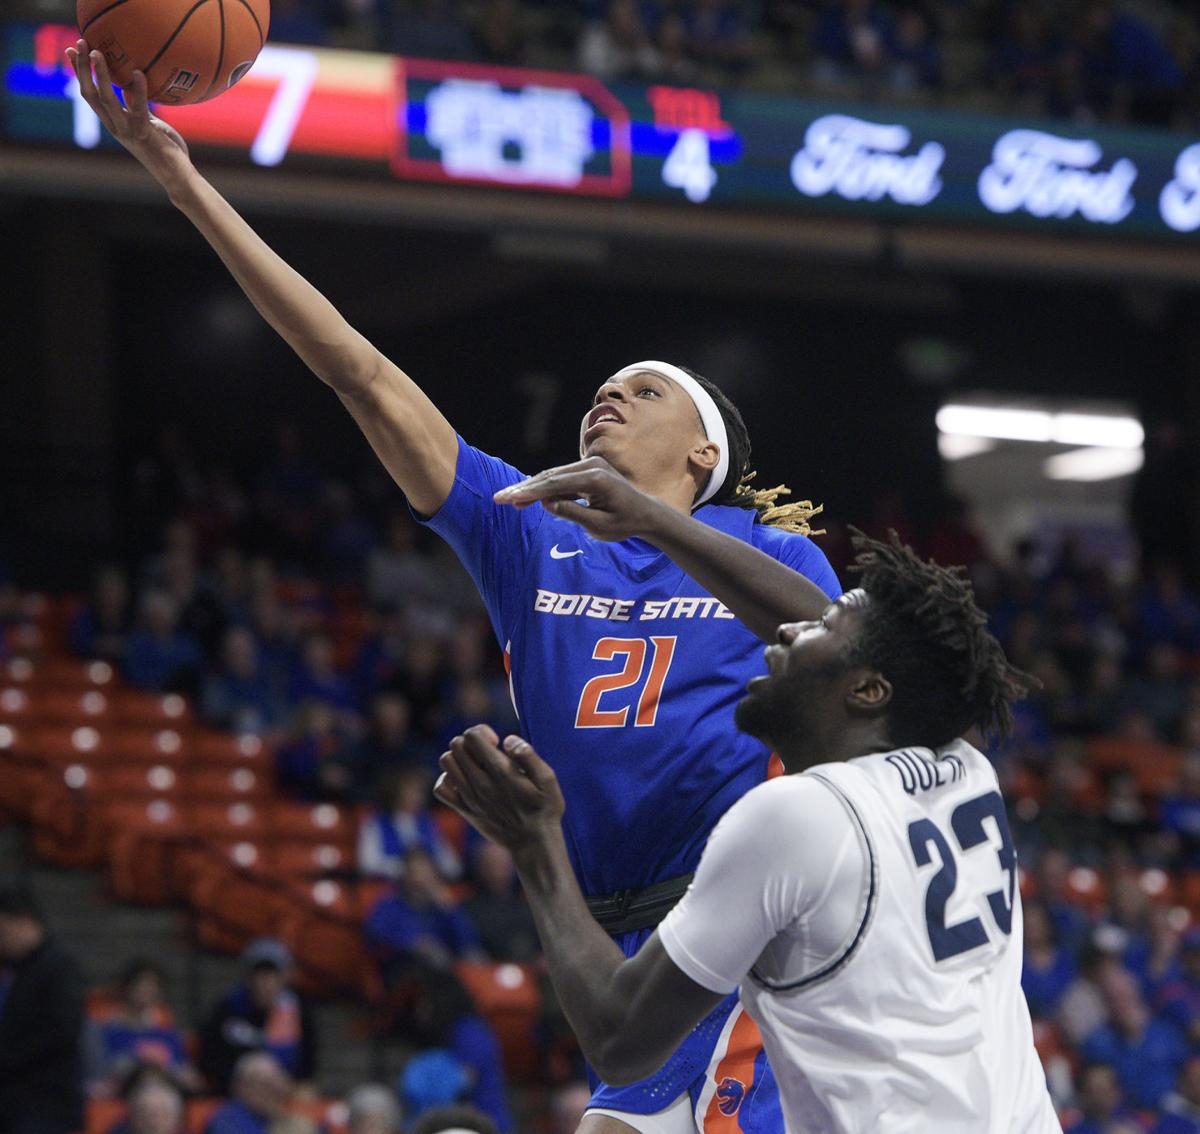 Aggies suffer epic collapse against Broncos